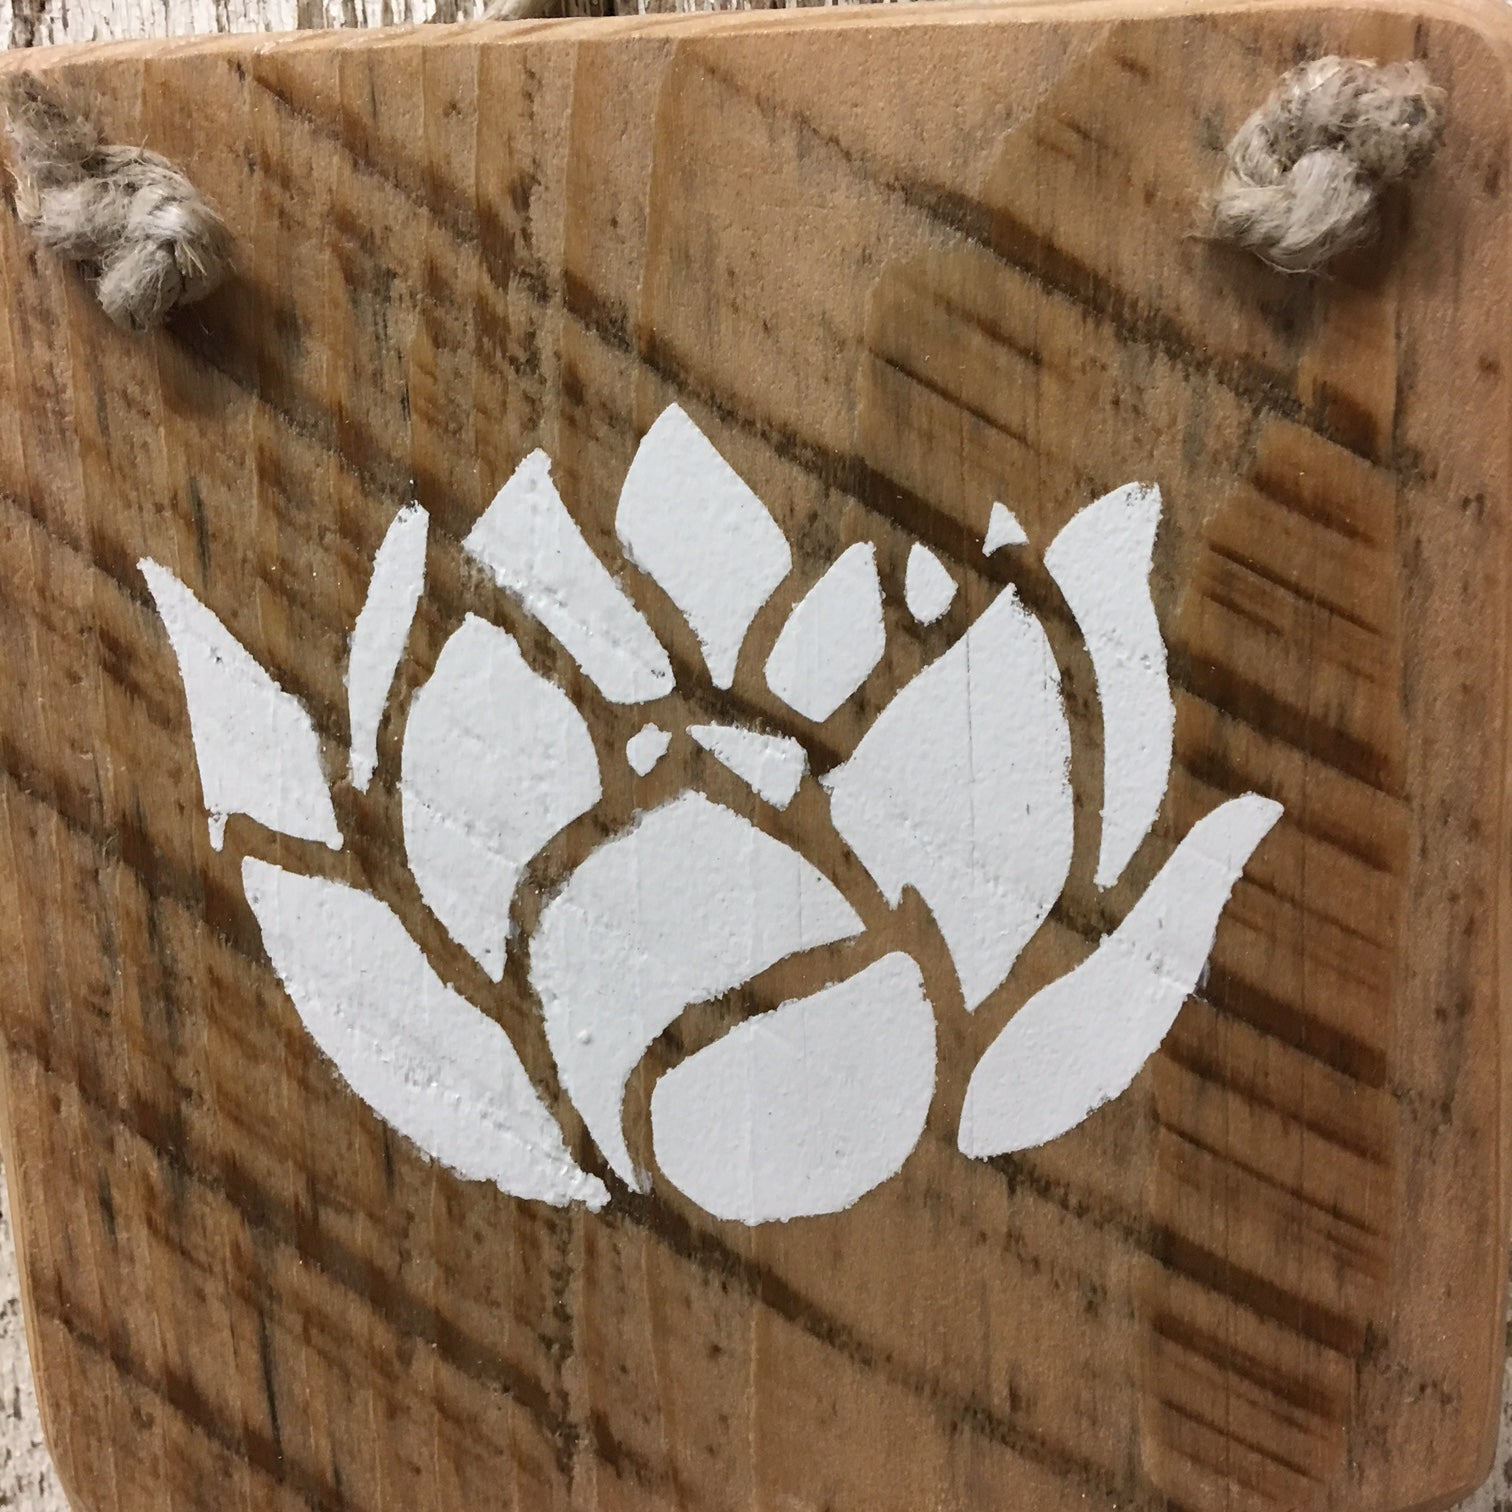 lotus flower gift idea reclaimed wood sign rebirth enlightenment